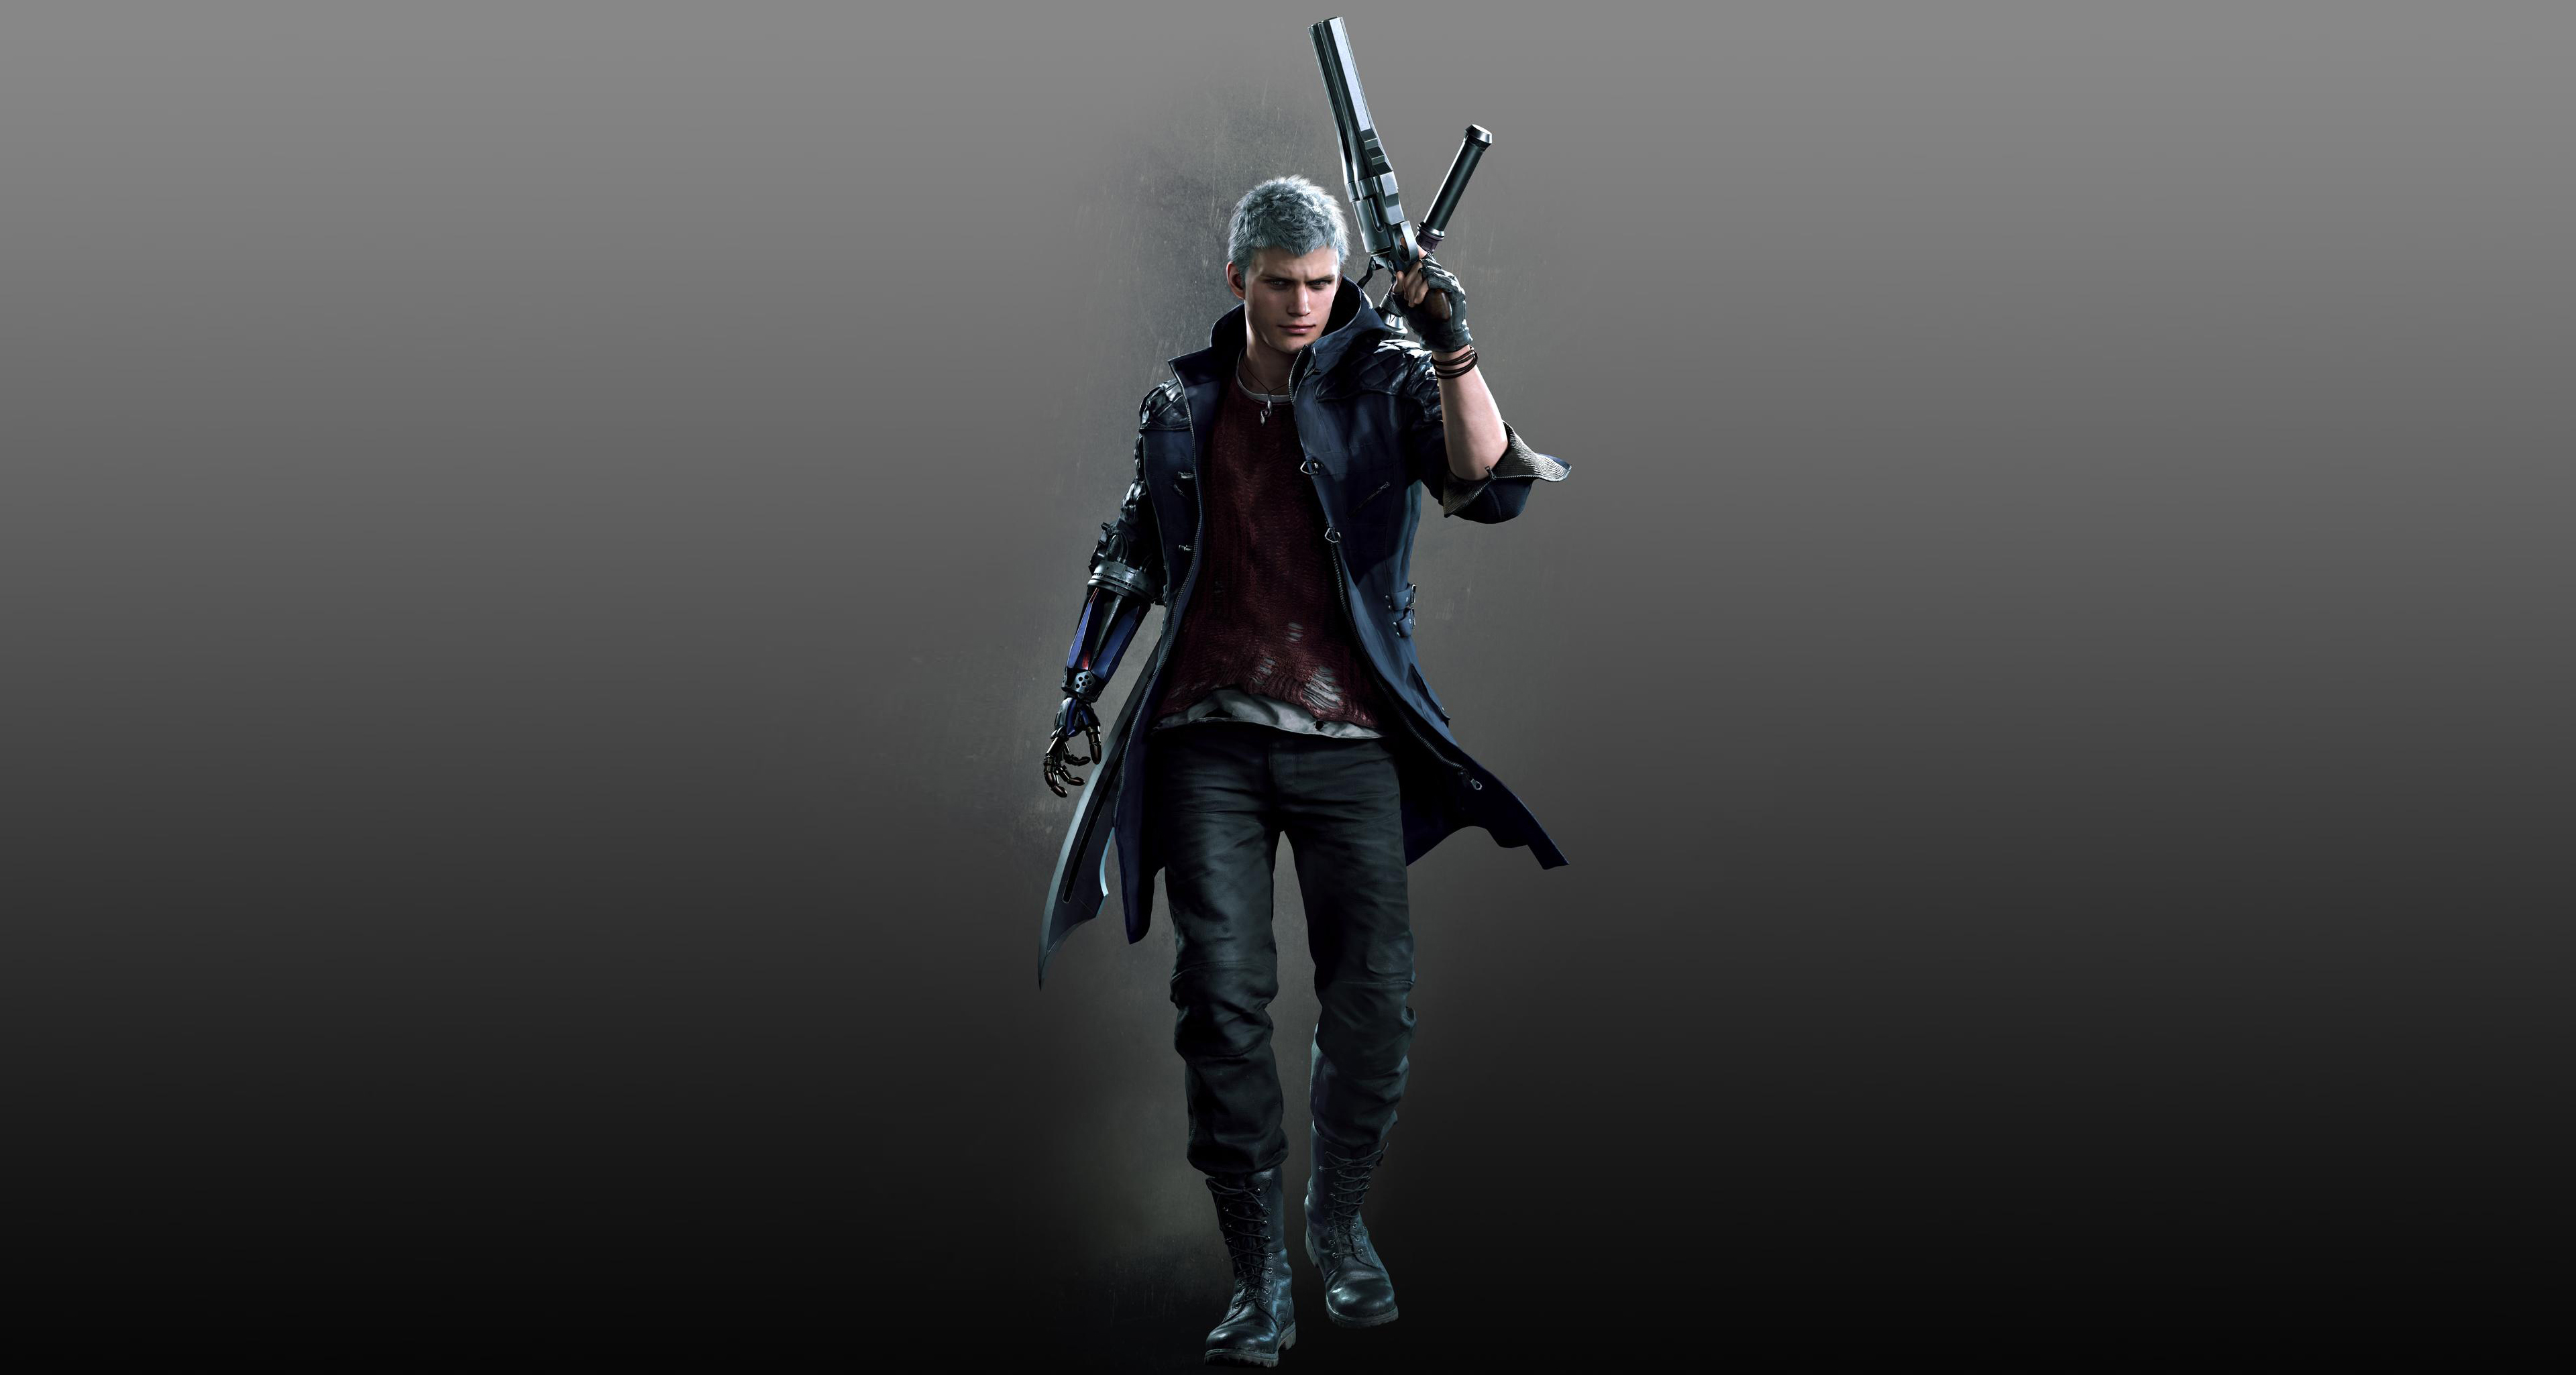 Nero Devil May Cry 5 2019 Hd Games 4k Wallpapers Images